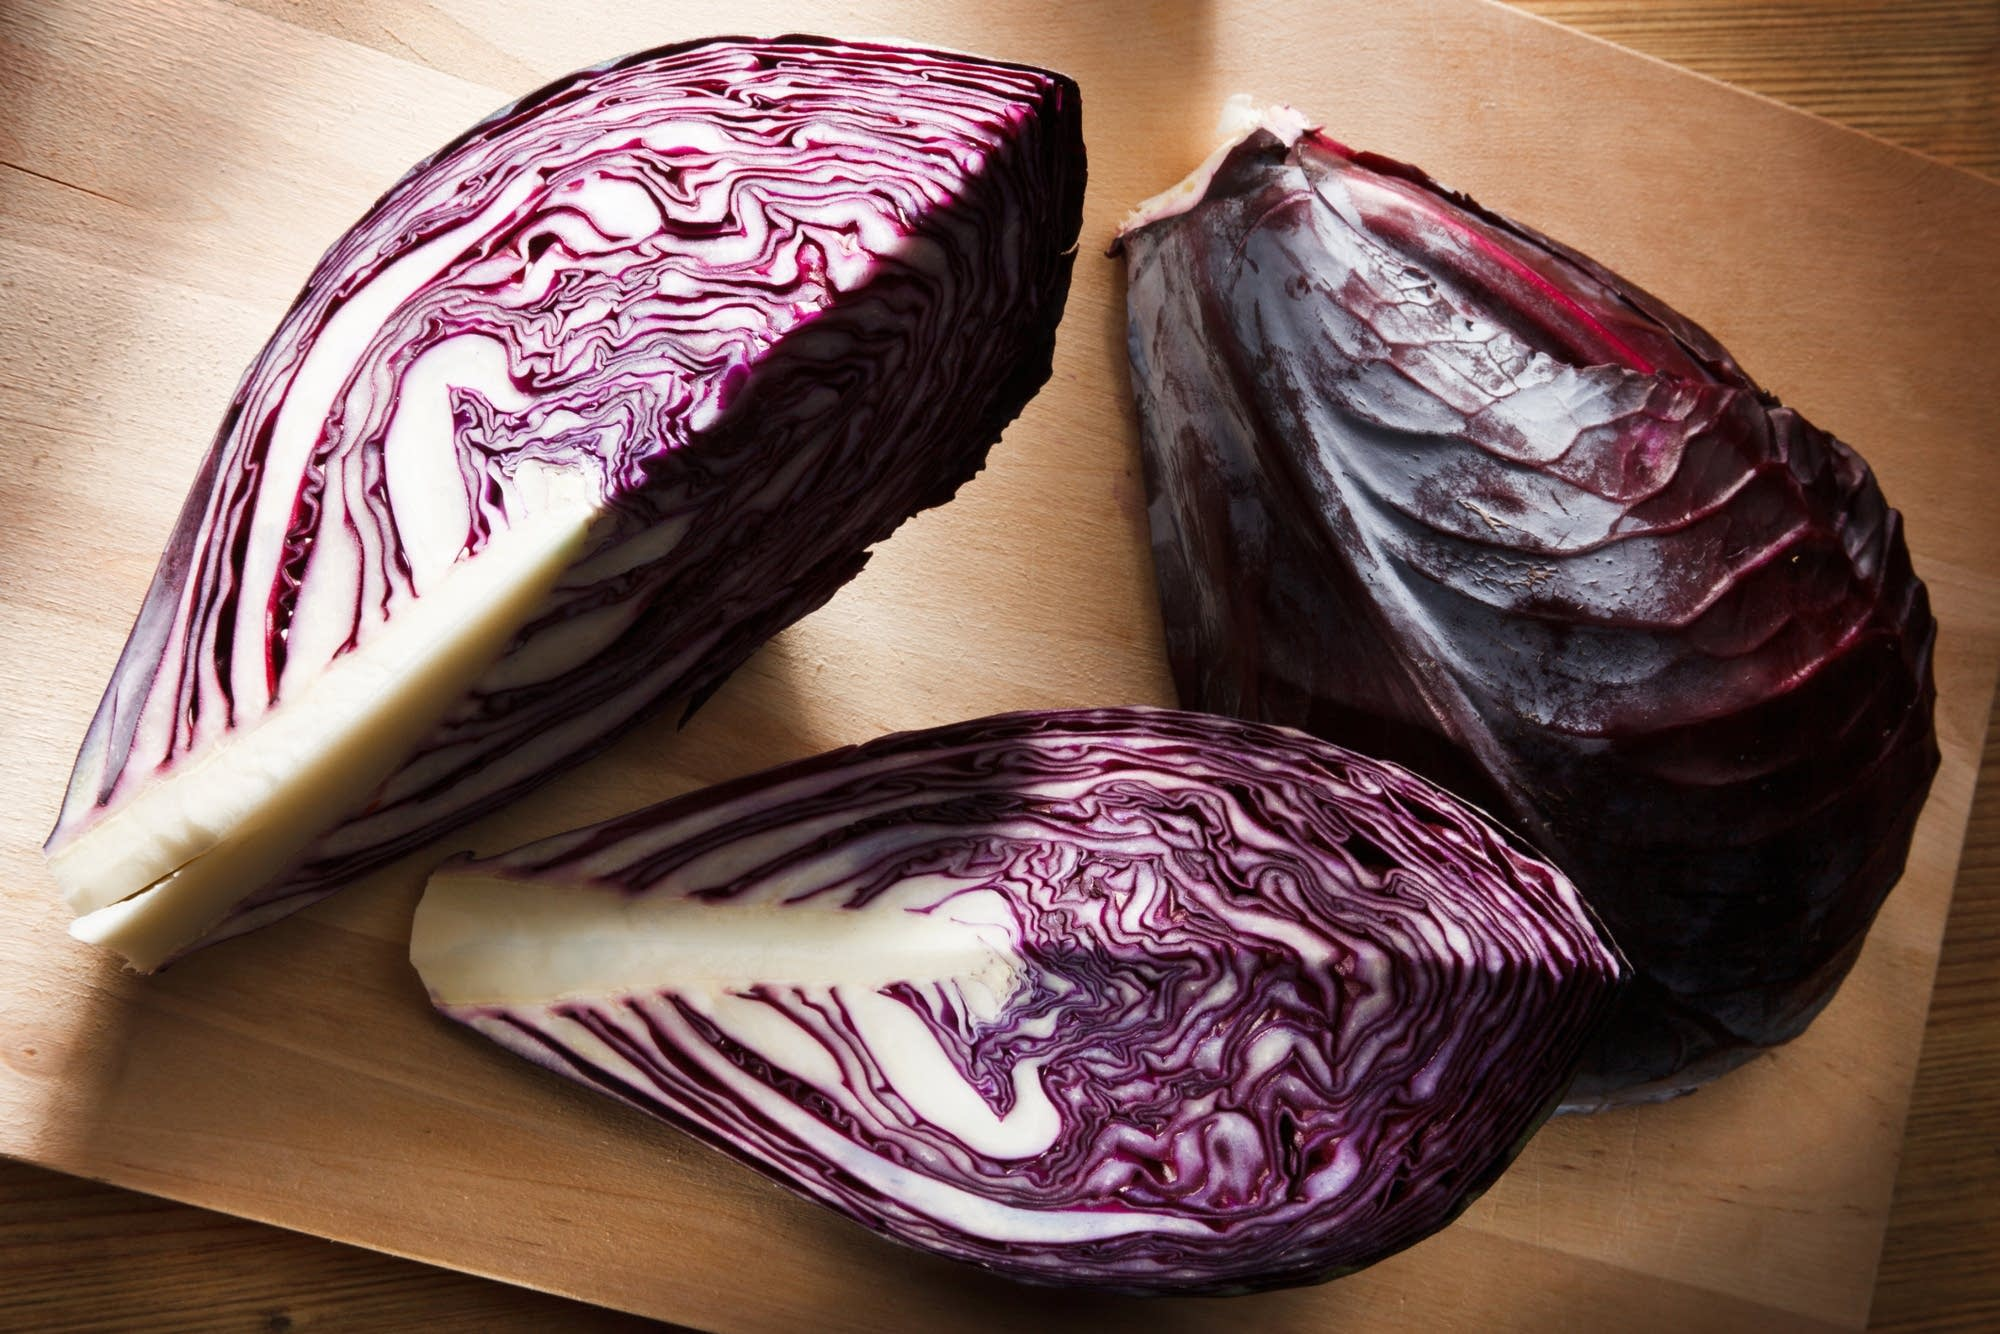 Mustard Glazed Red Cabbage The Splendid Table